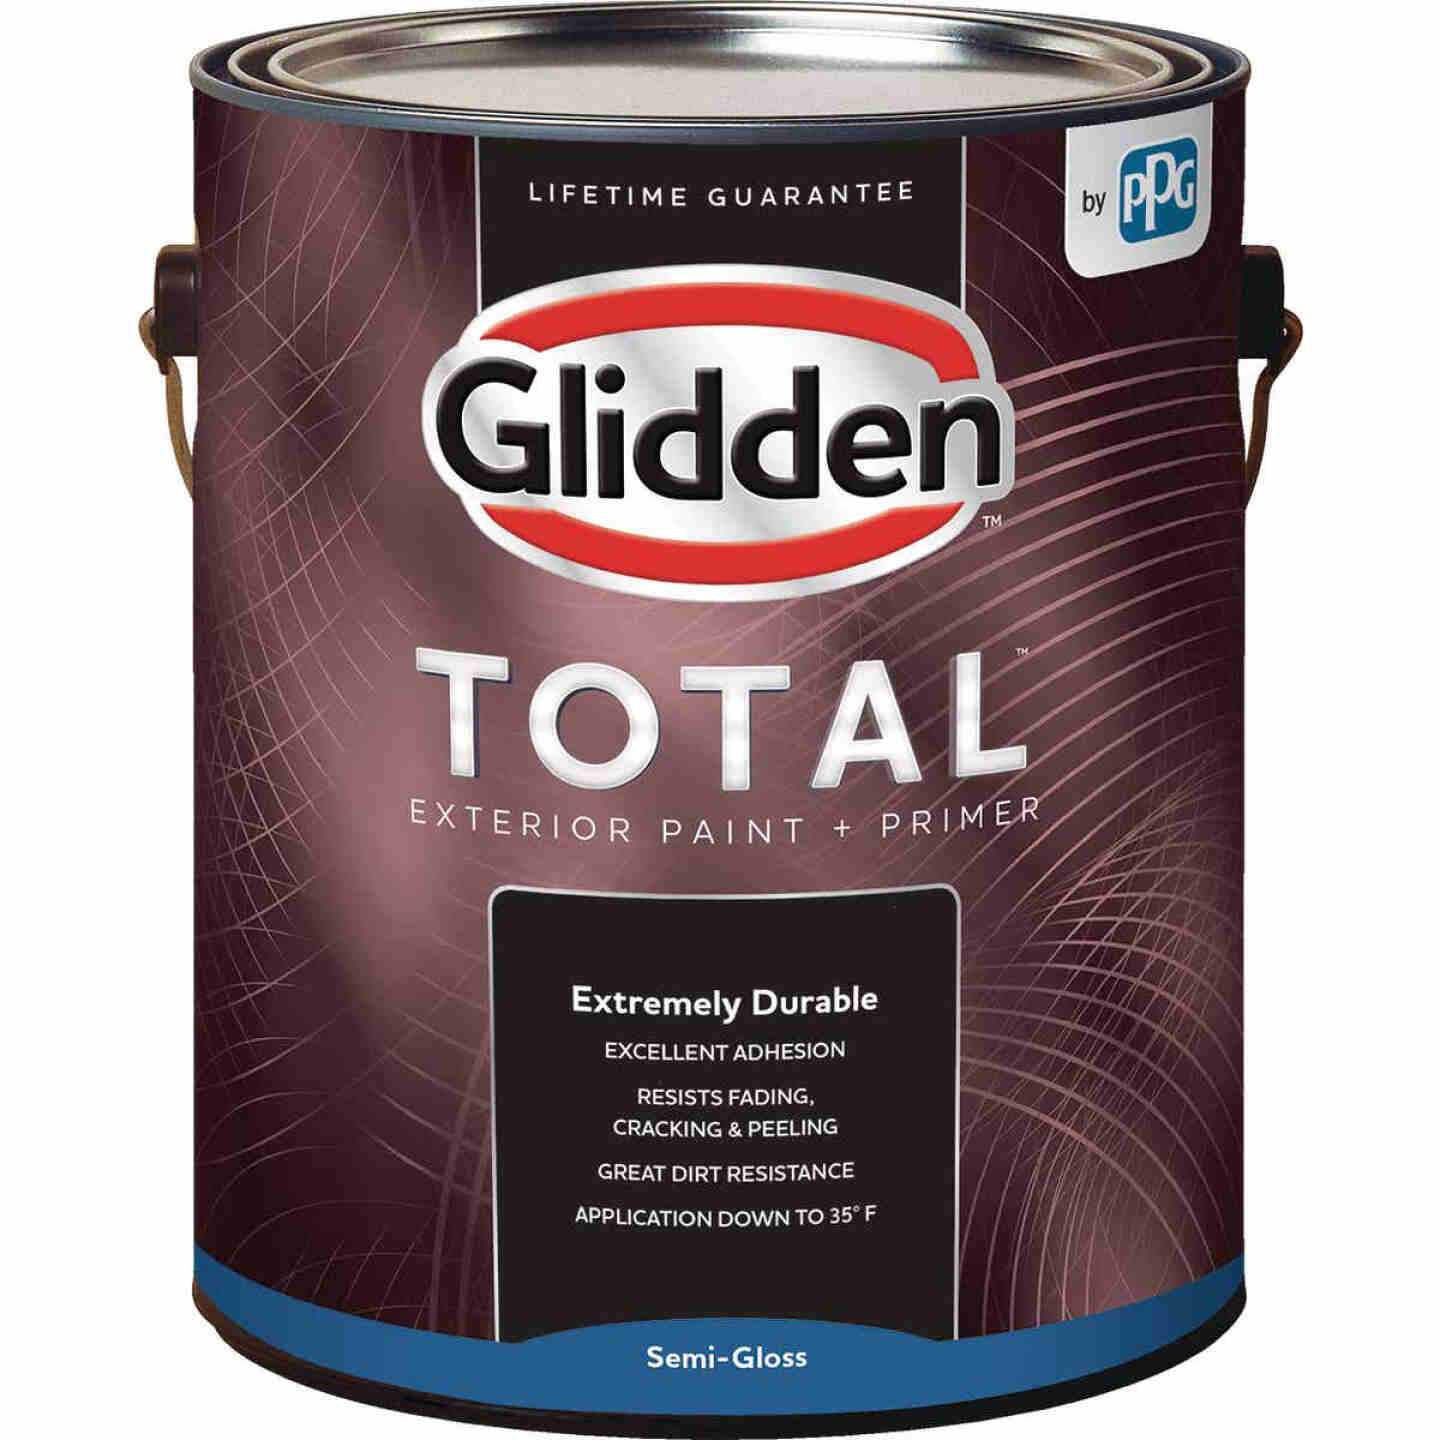 Glidden Total Exterior Paint + Primer Semi-Gloss Midtone Base 1 Gallon Image 1